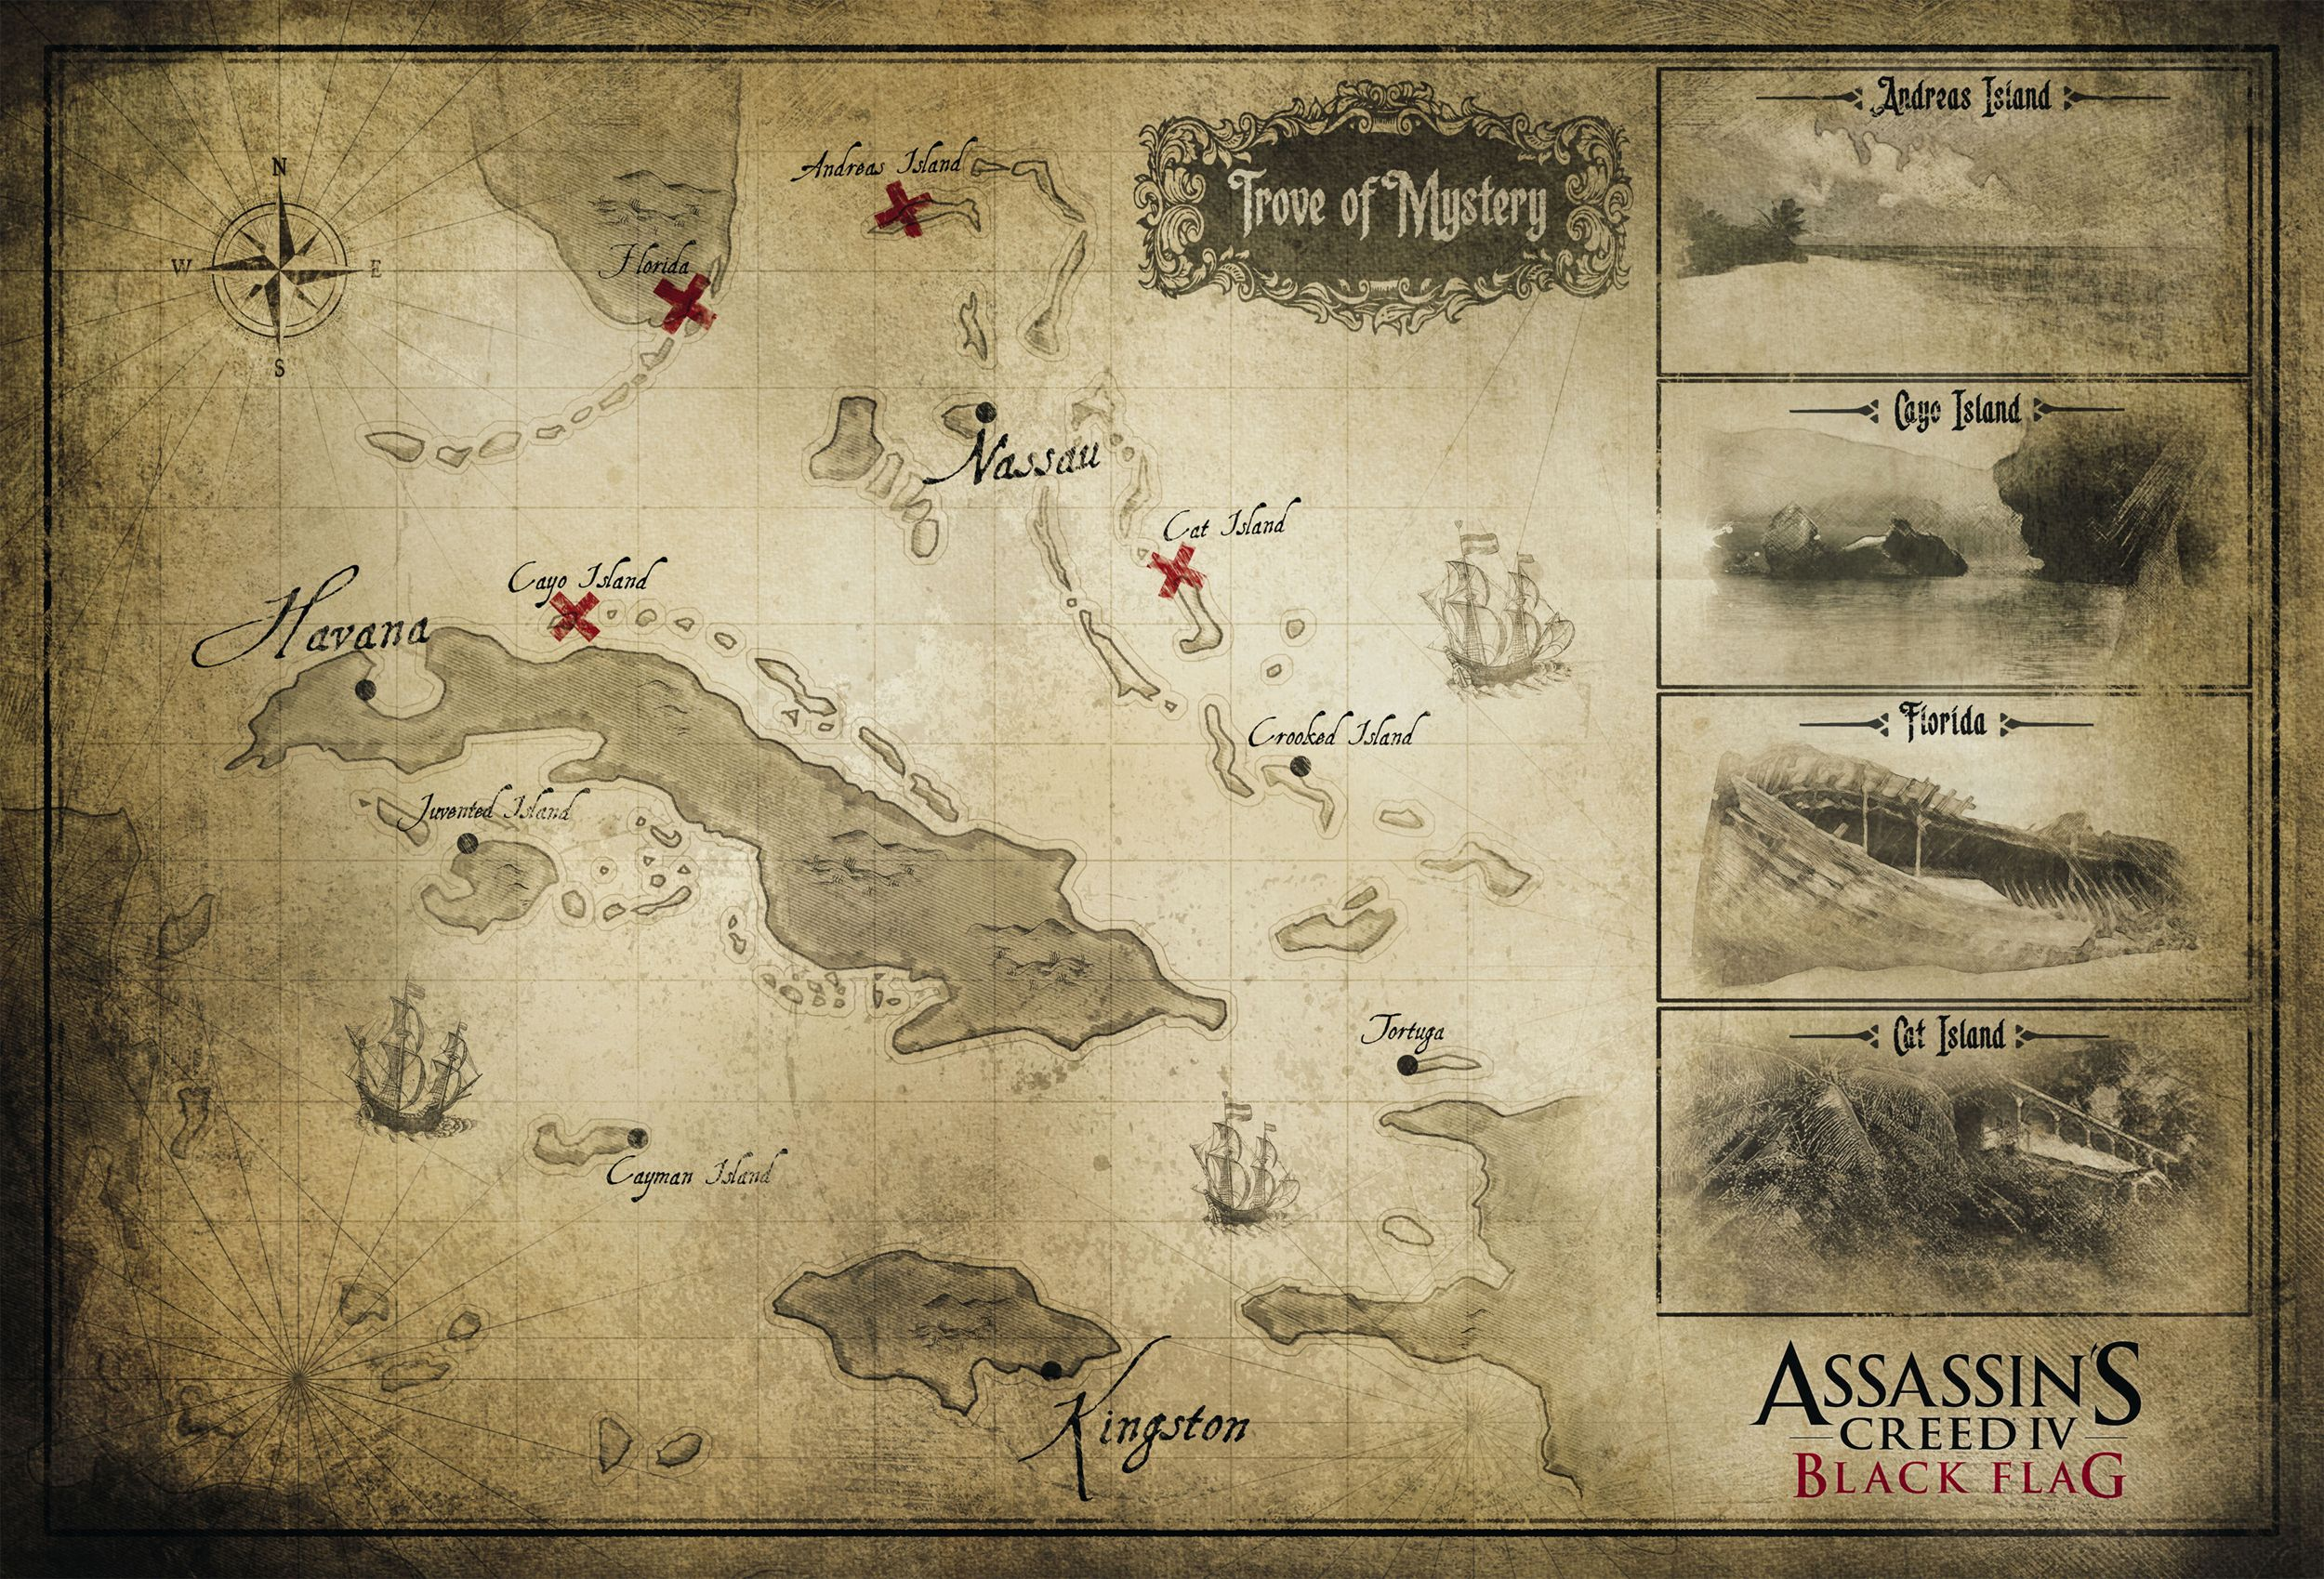 Assassin S Creed Iv Black Flag Map Evilgmr Assassins Creed Black Flag Assassins Creed 4 Black Flag